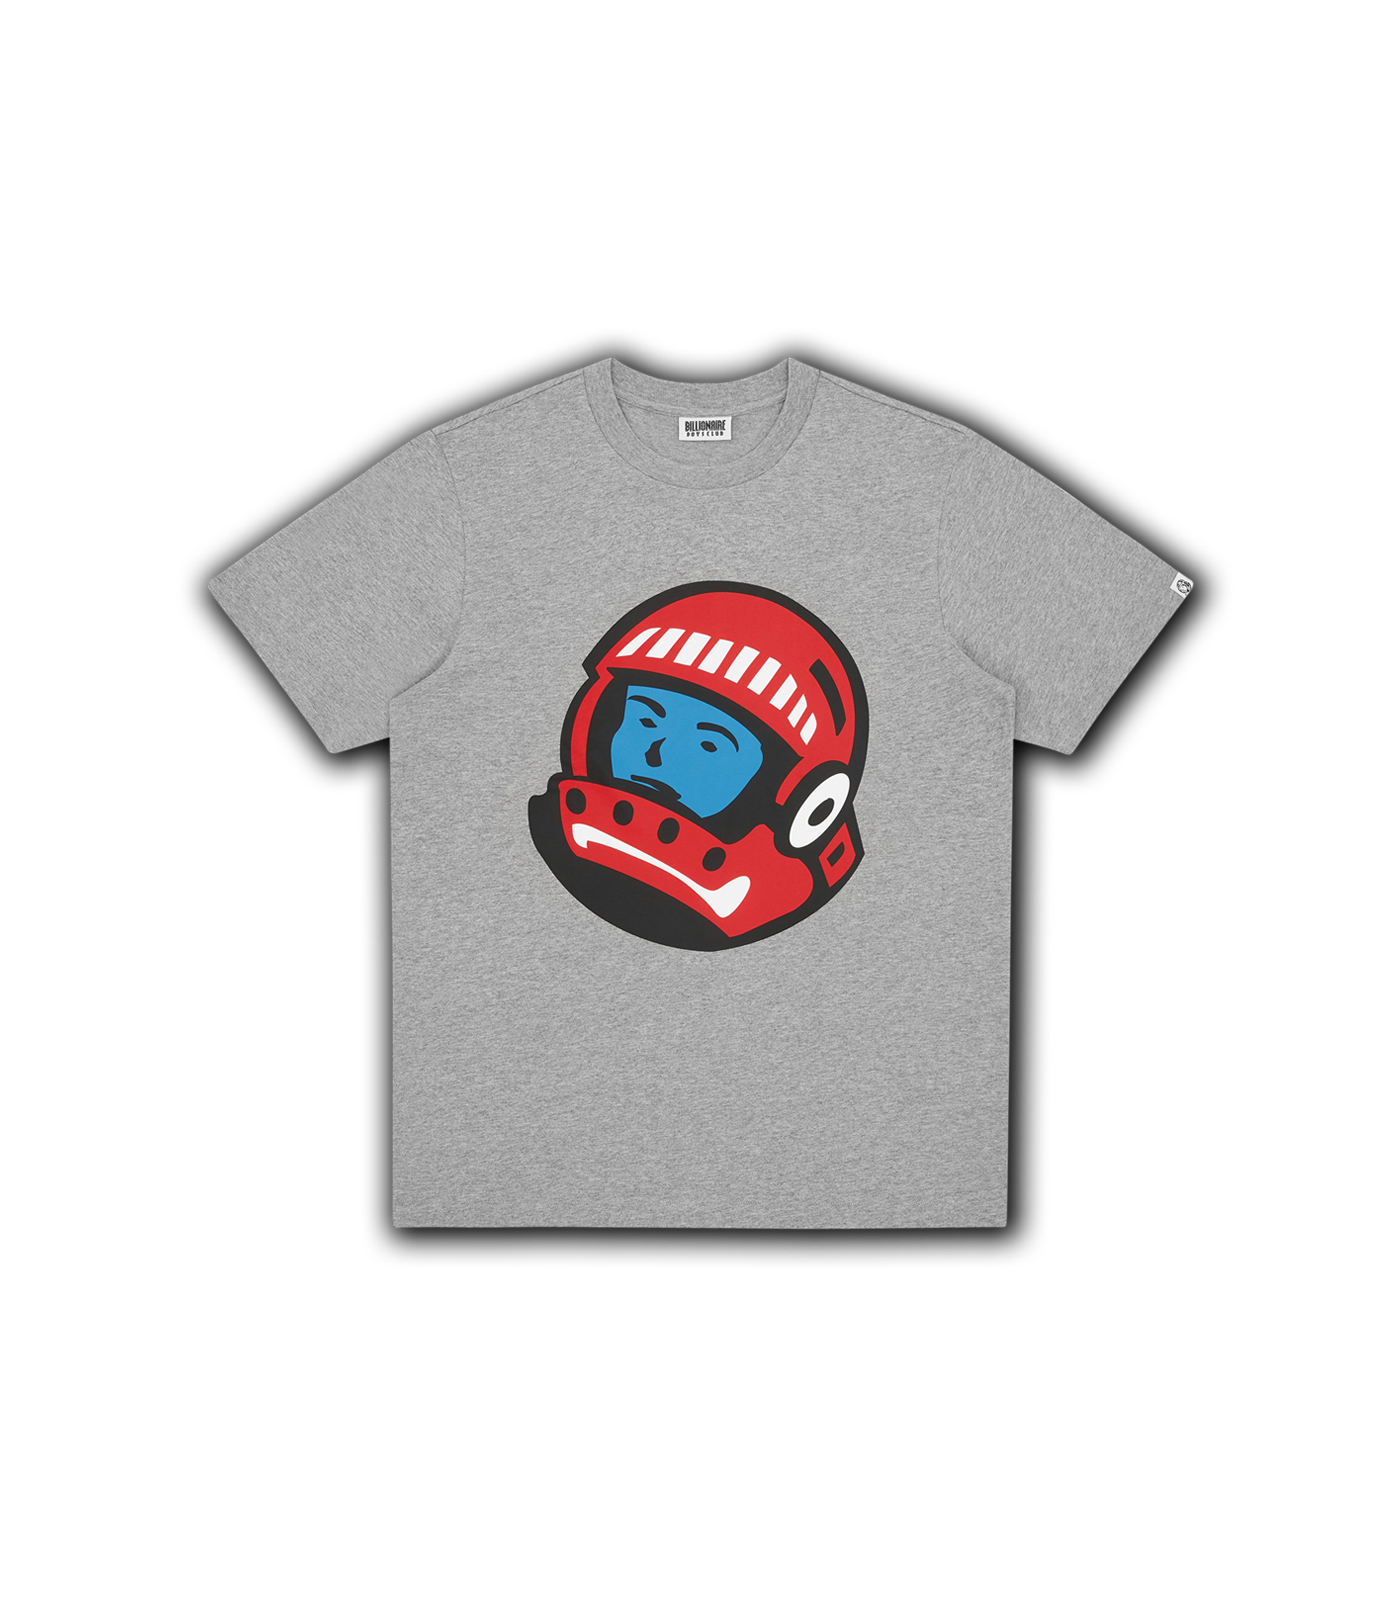 ASTRO GRAPHIC T-SHIRT